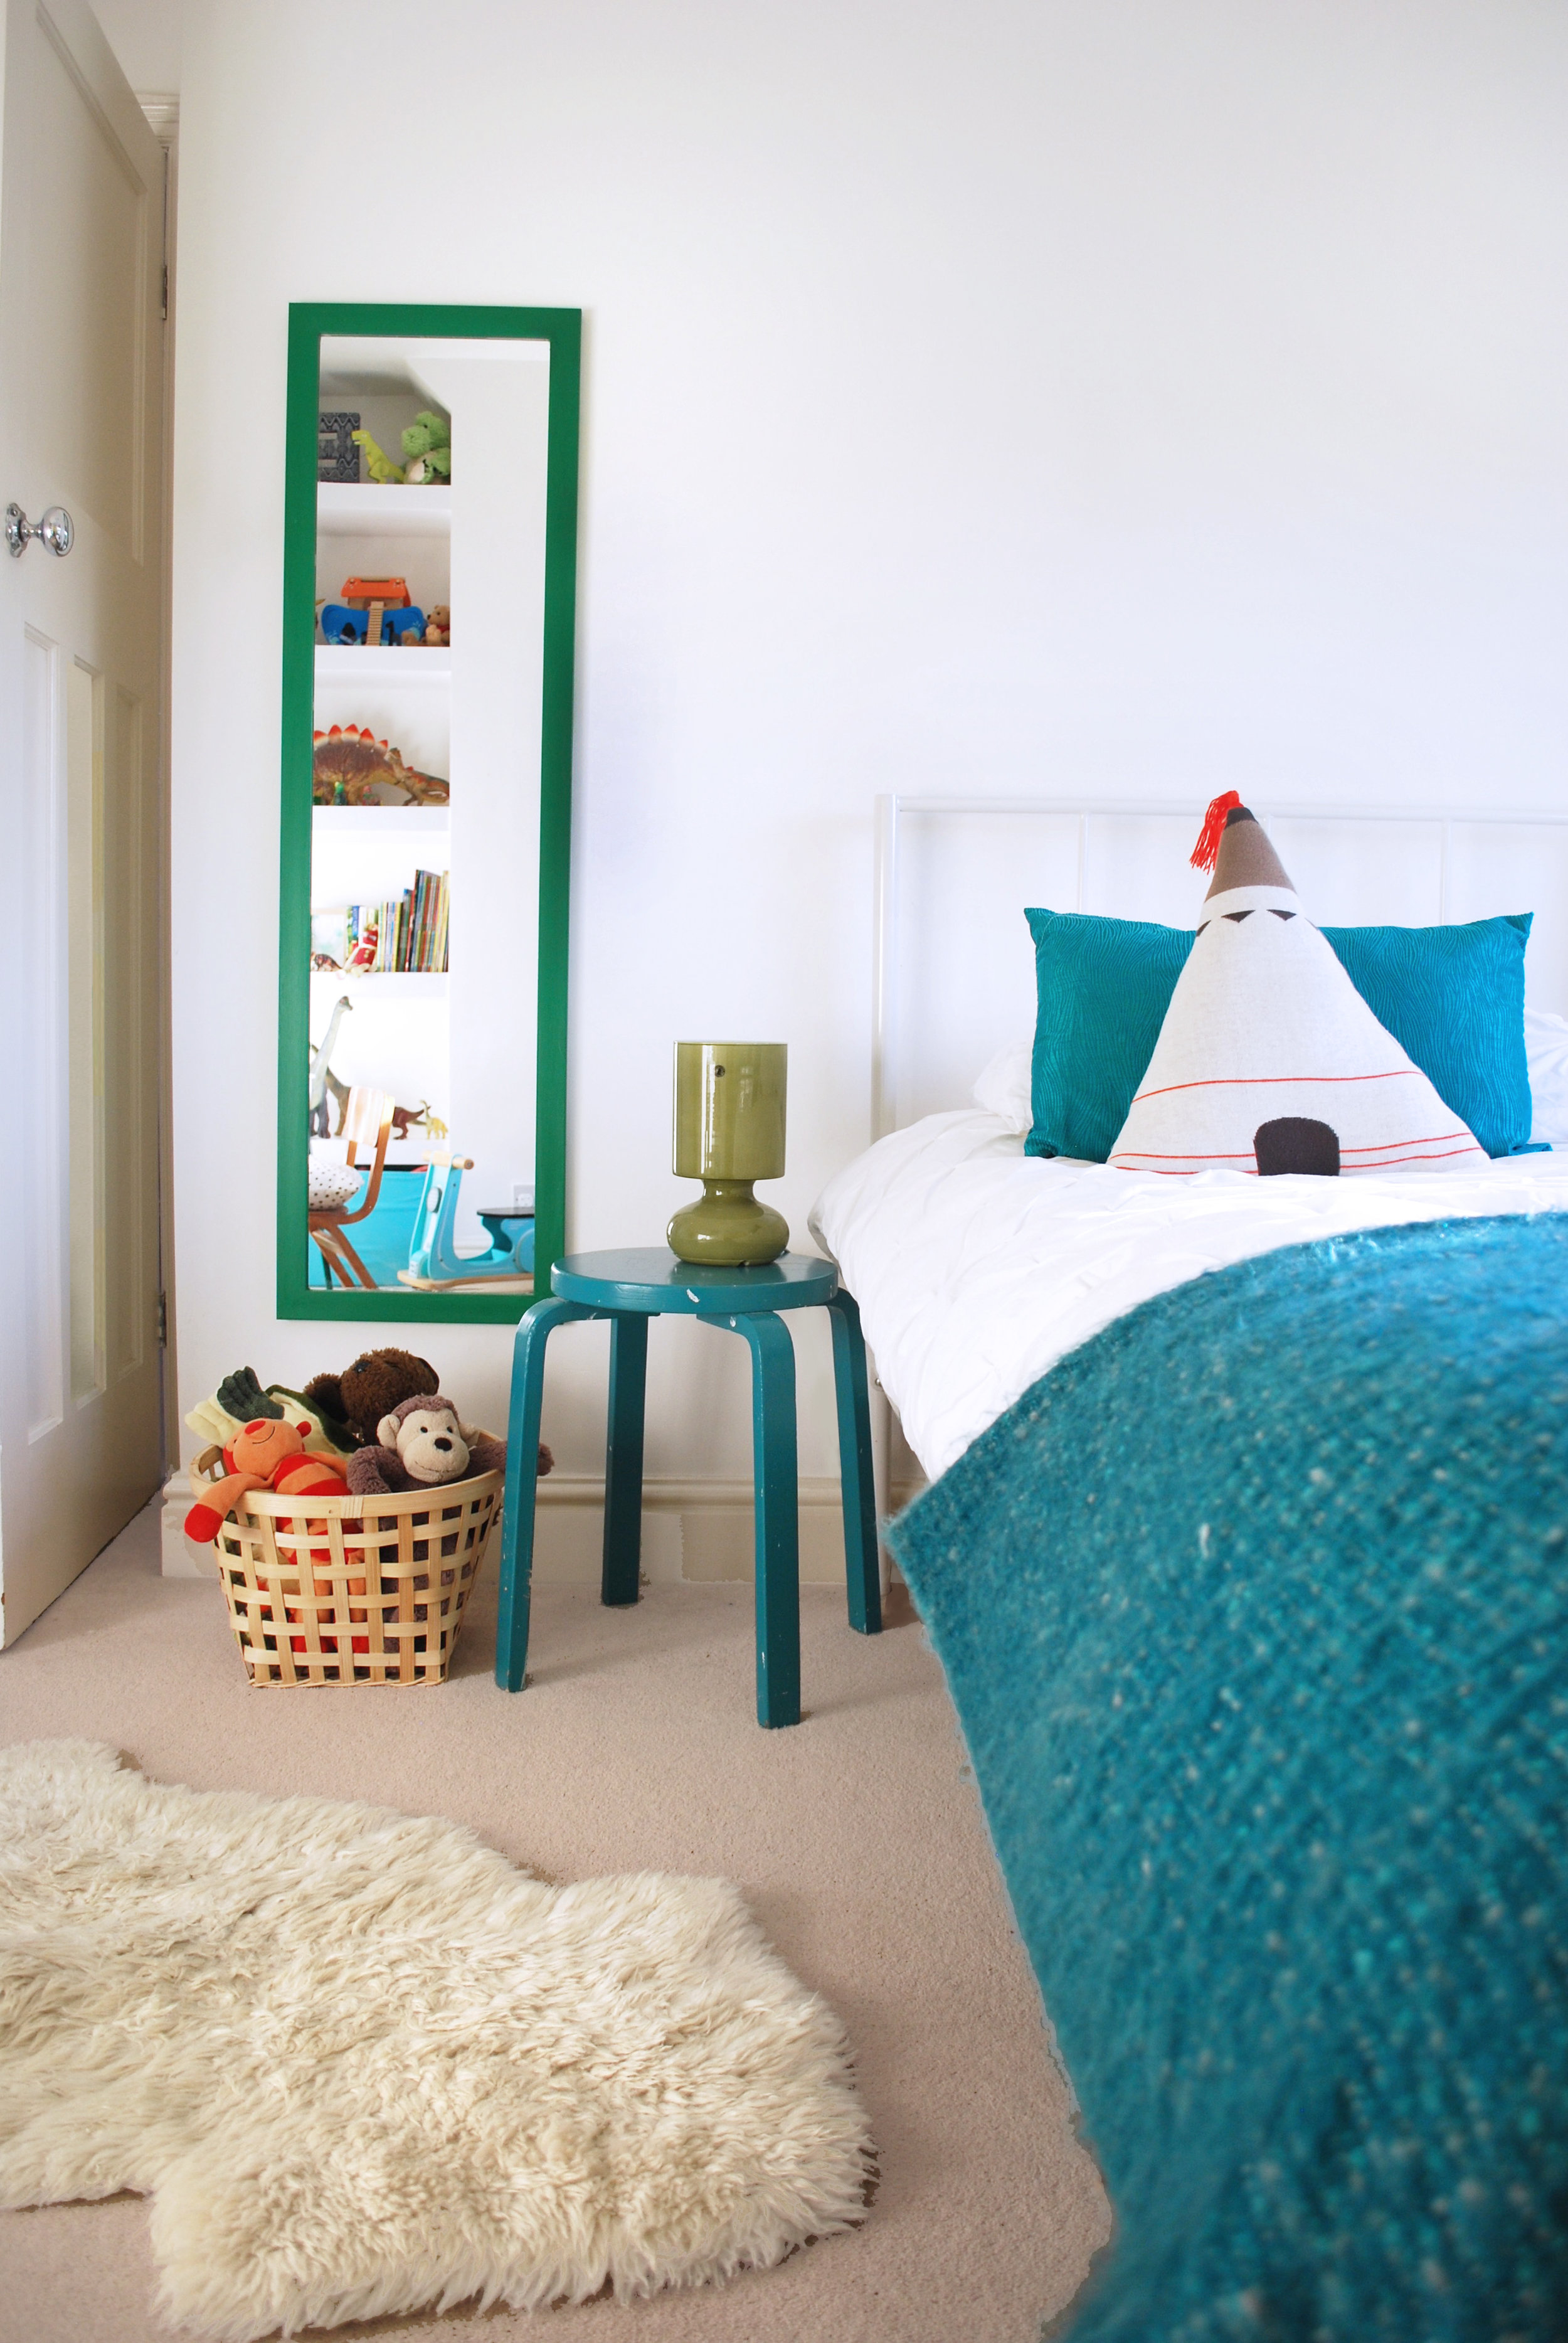 Boys green side table and white bedroom.jpg